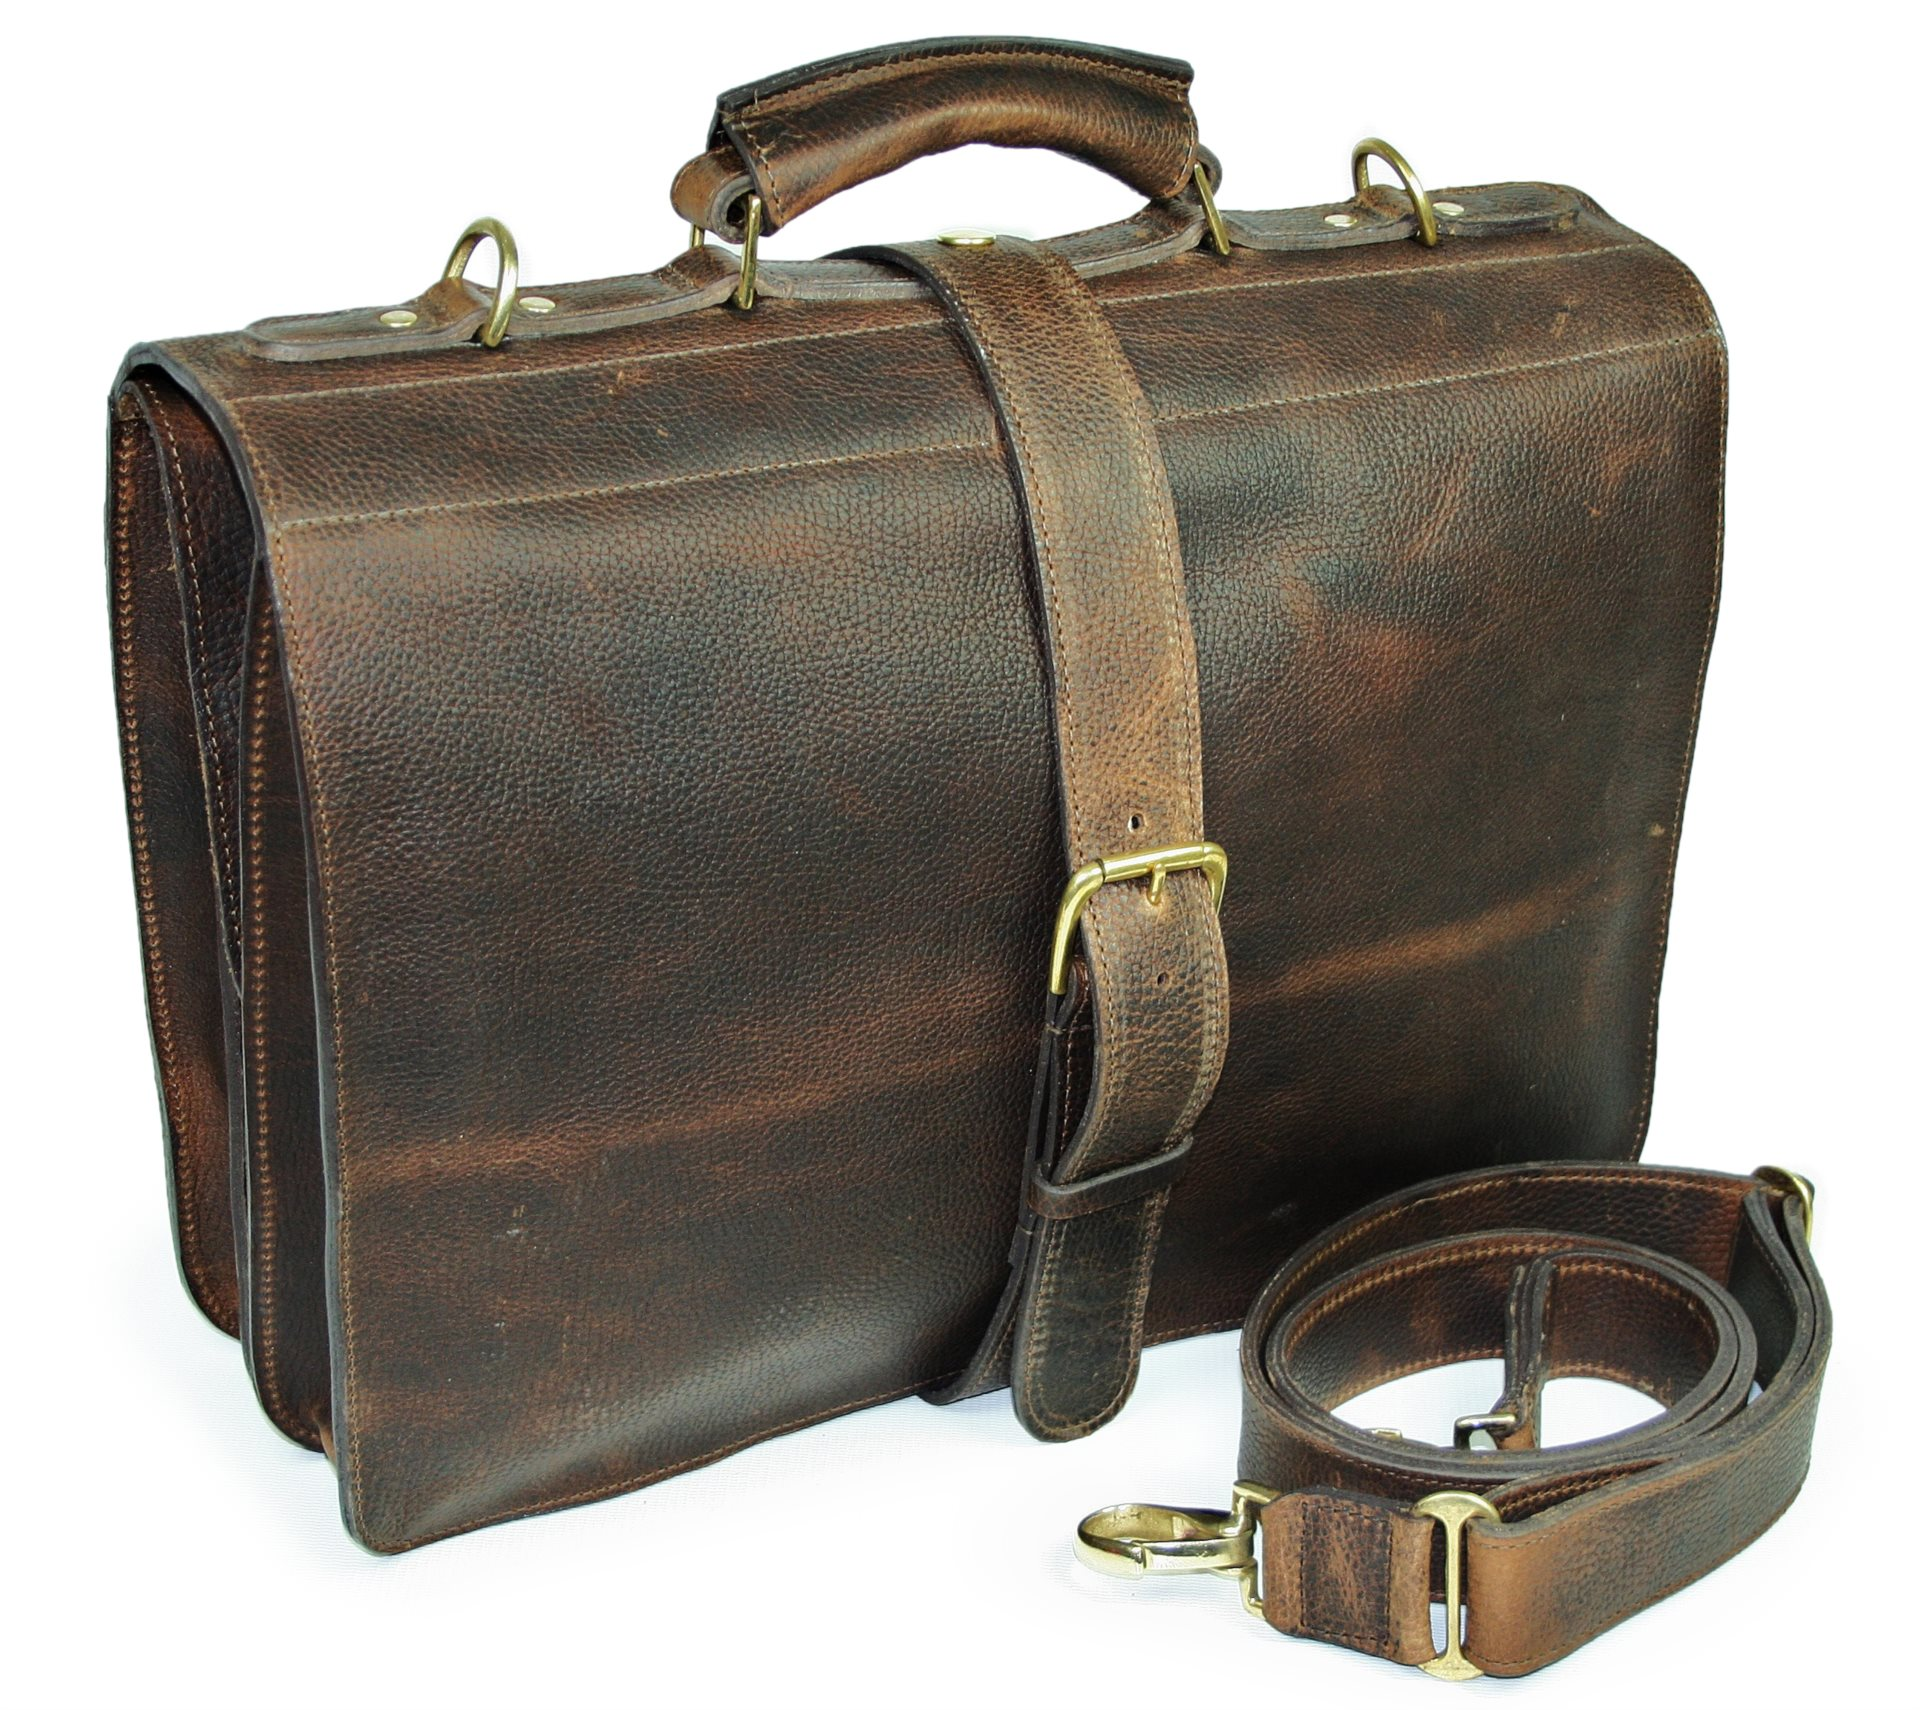 Kempton Saddlebag Briefcase